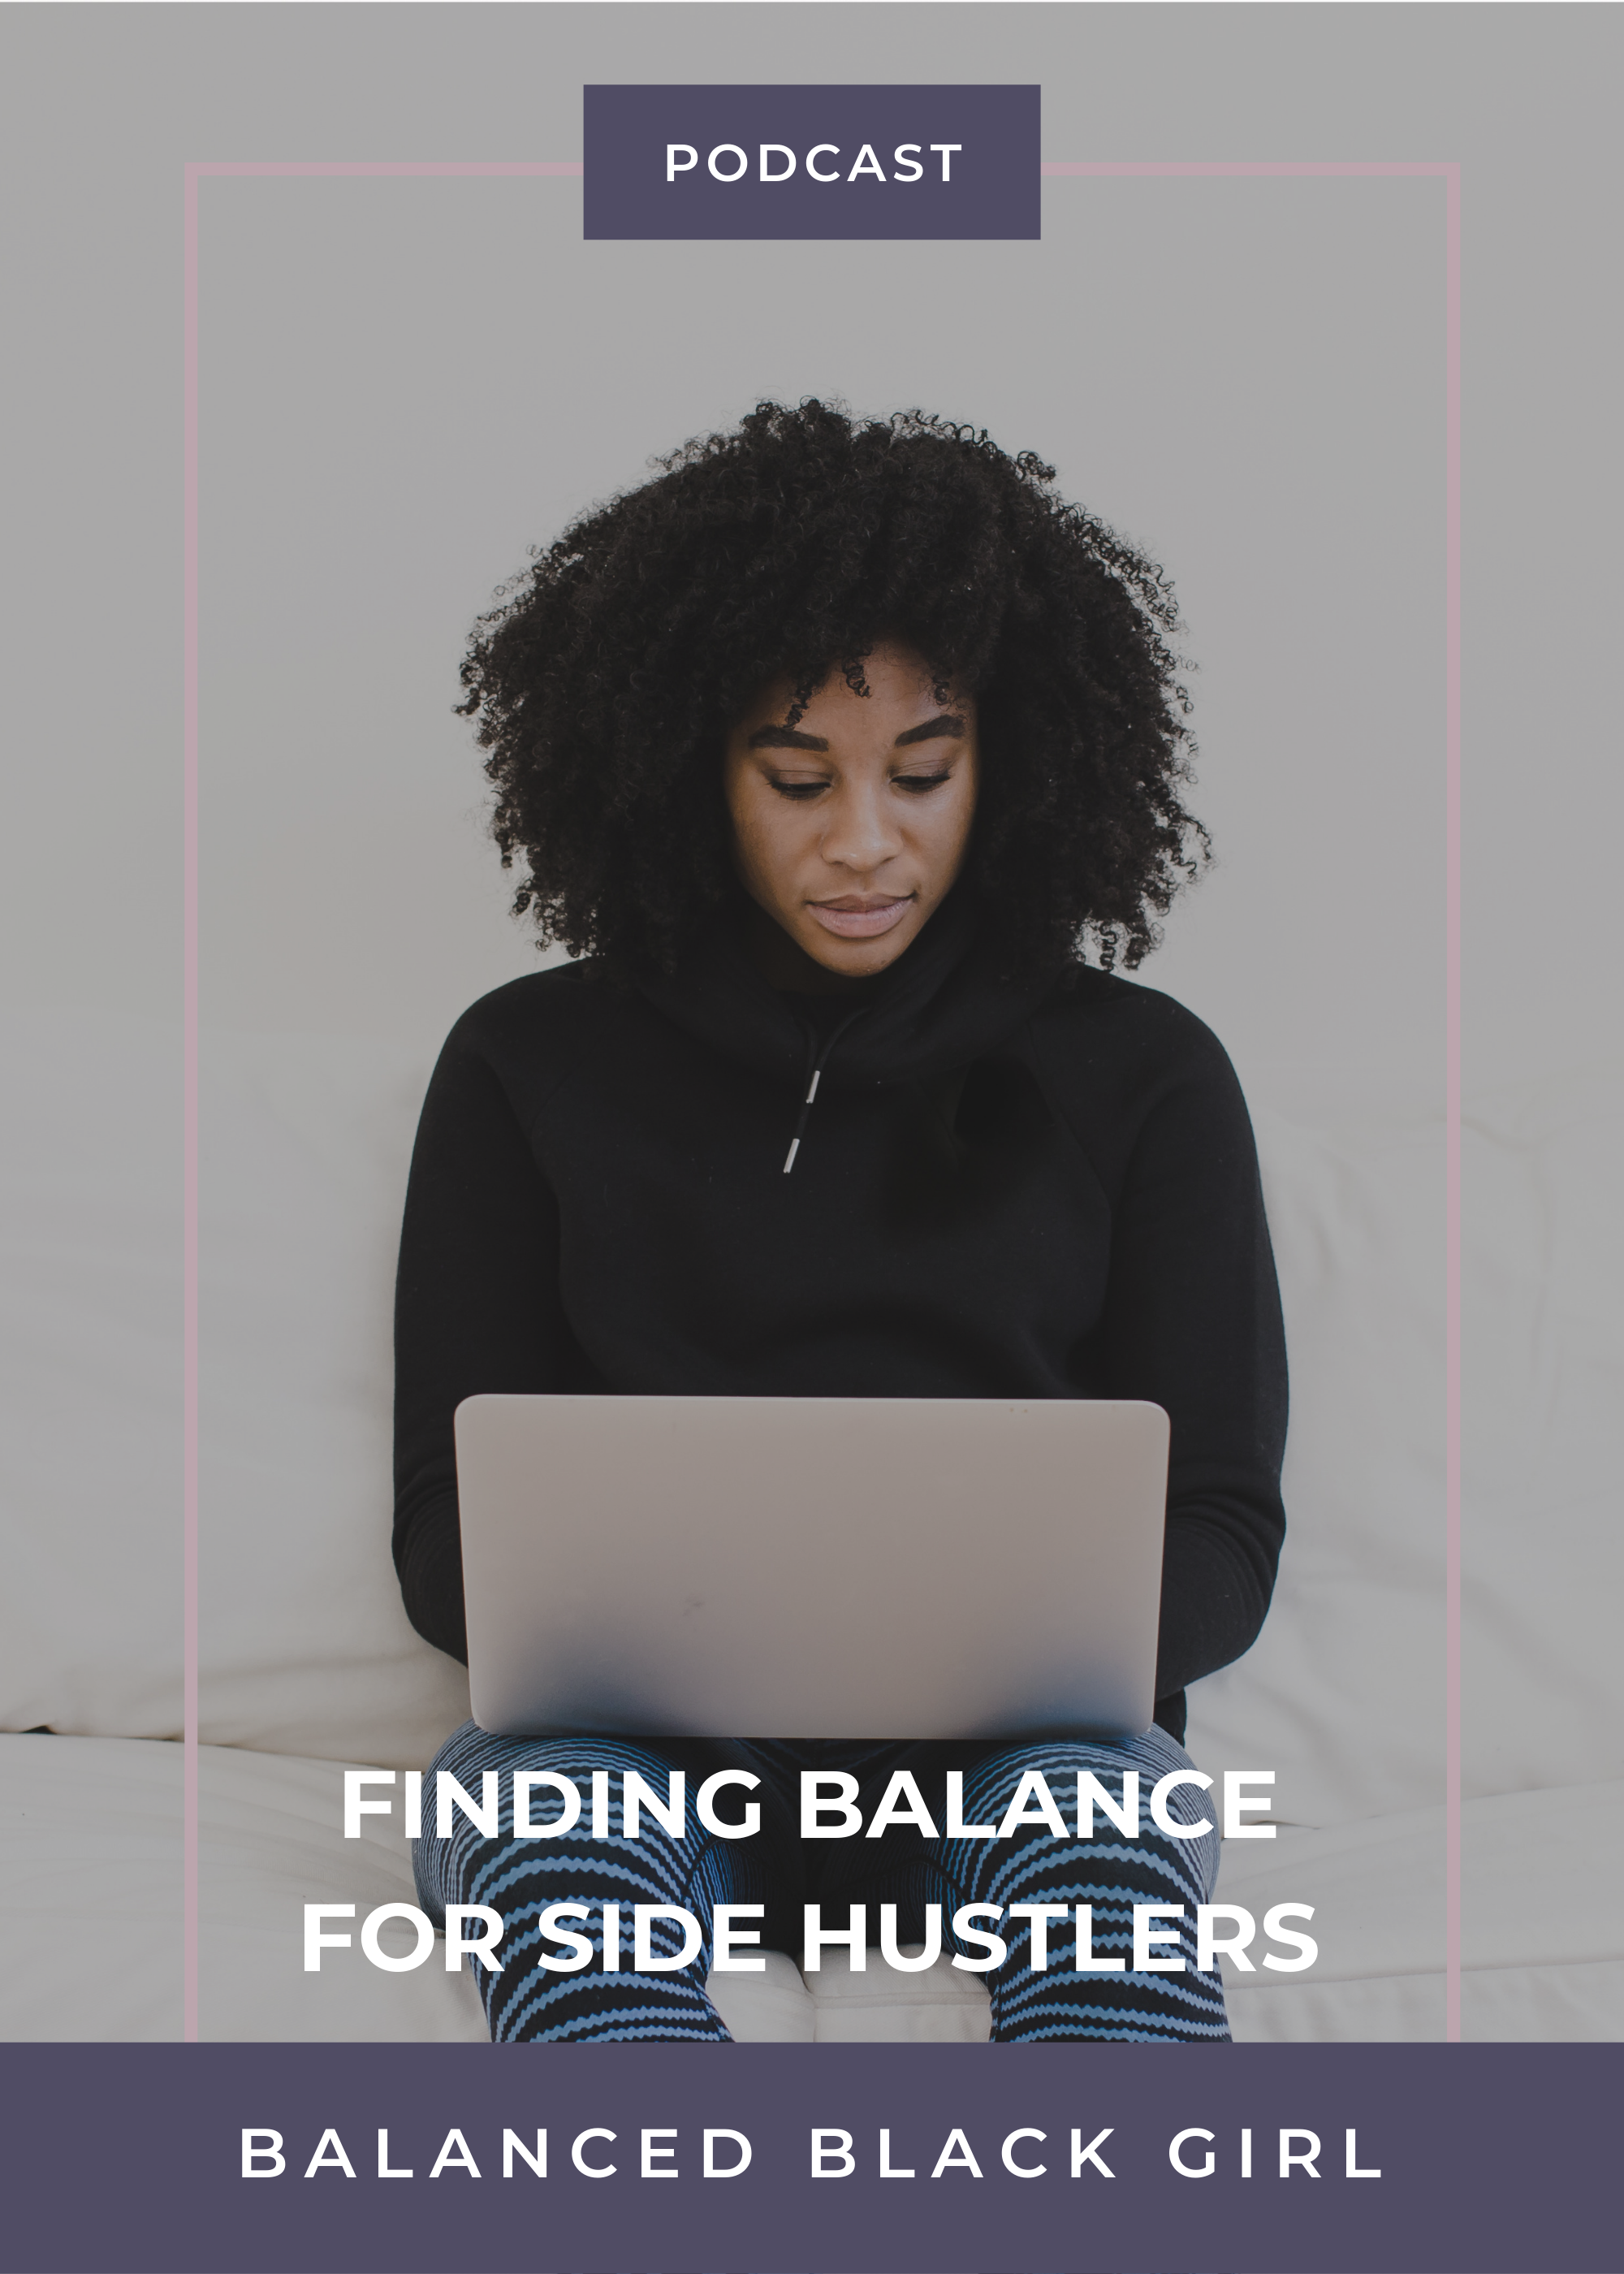 Feel Good Friday #18: Finding Balance As A Side Hustler | Balanced Black Girl Podcast